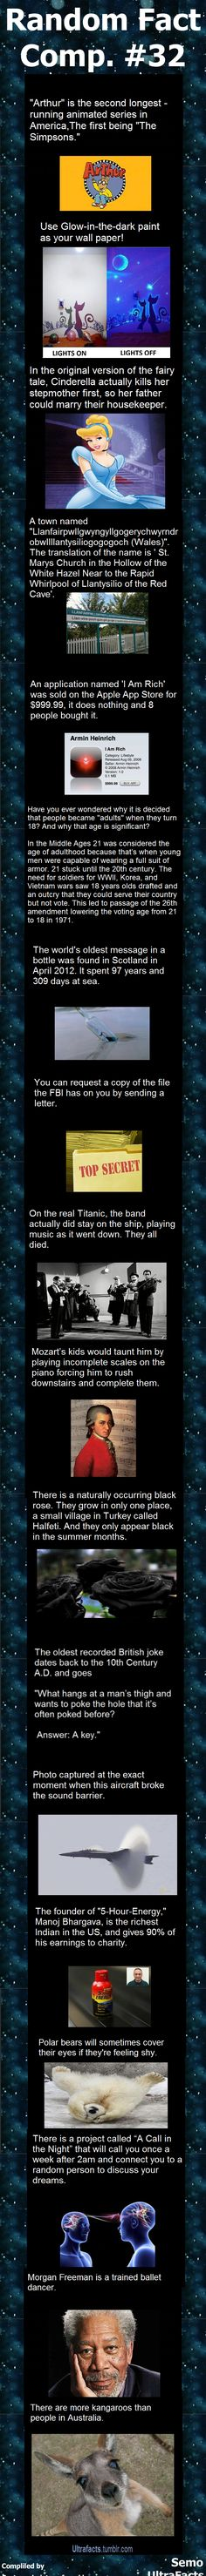 Random Fact Comp. 32 // funny pictures - funny photos - funny images - funny pics - funny quotes - #lol #humor #funnypictures